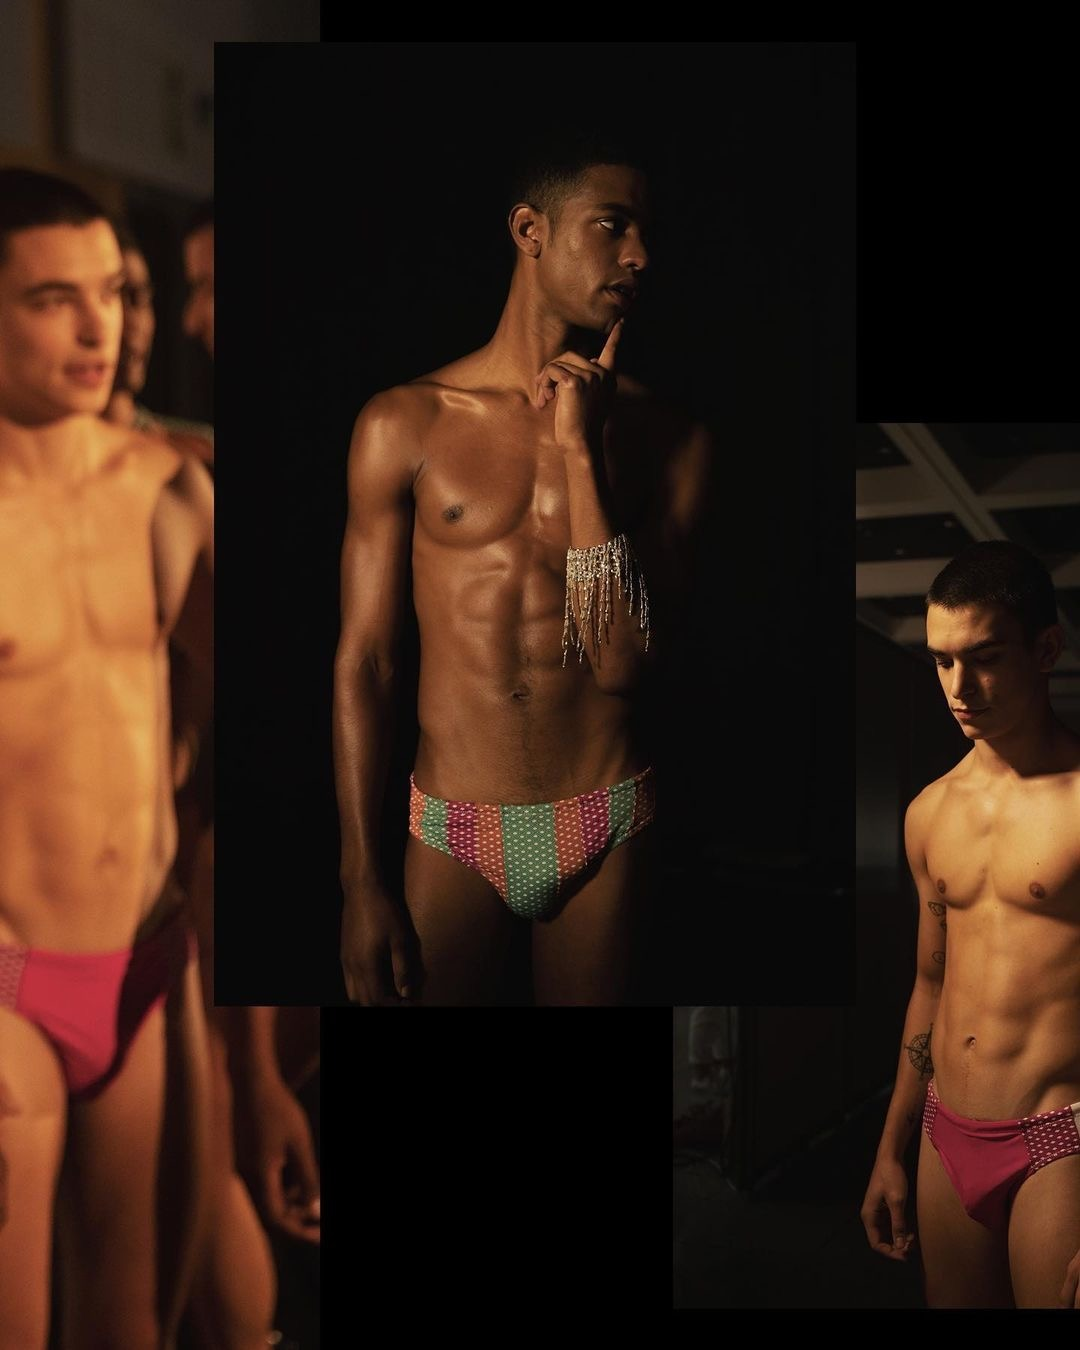 Simone Bricchi & Toni Engonga by Gerard Estadella – Backstage at Gran Canaria Swim Week (S/S 2021)